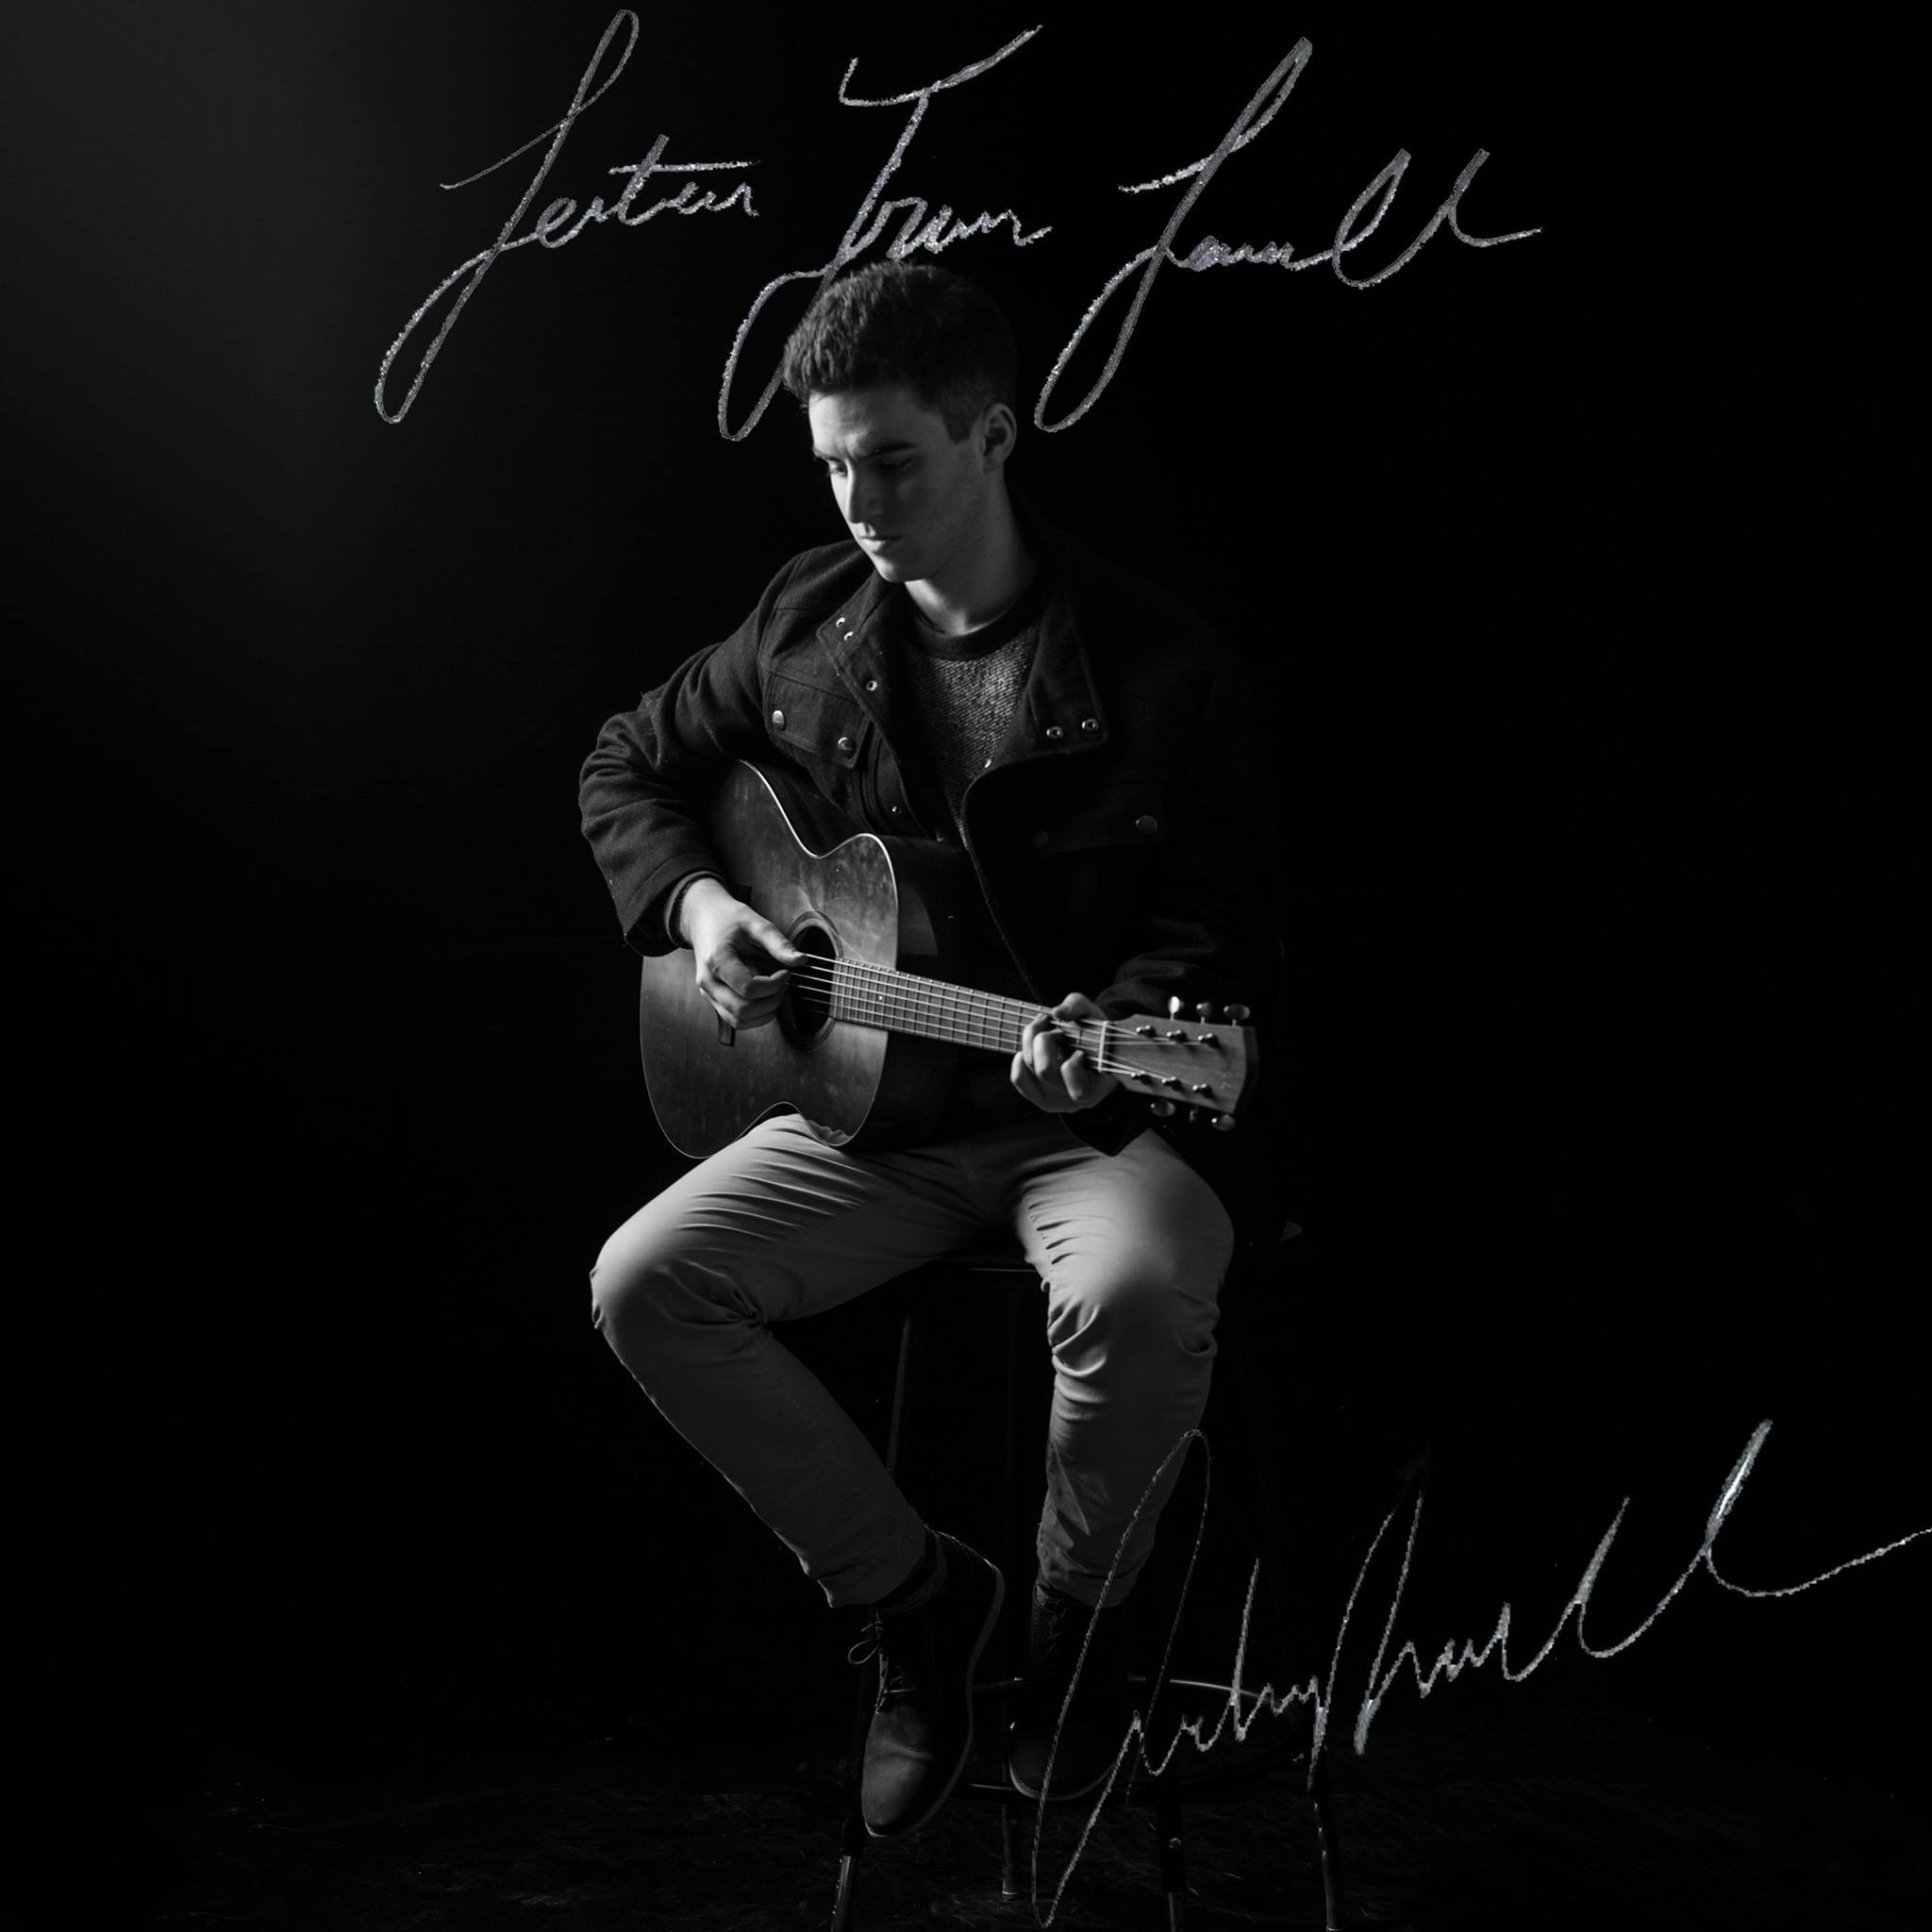 Andrew Marshall, Singer-Songwriter based out of Lowell, MA. Draws inspiration from artists such as John Mayer, Jason Mraz, and Ed Sheeran. Performing locally and around the Boston area. Debut EP Letters From Lowell out now on iTunes, Apple Music, Spotify, and Amazon.  Visit his website to view his music:  www.awmarshallmusic.com